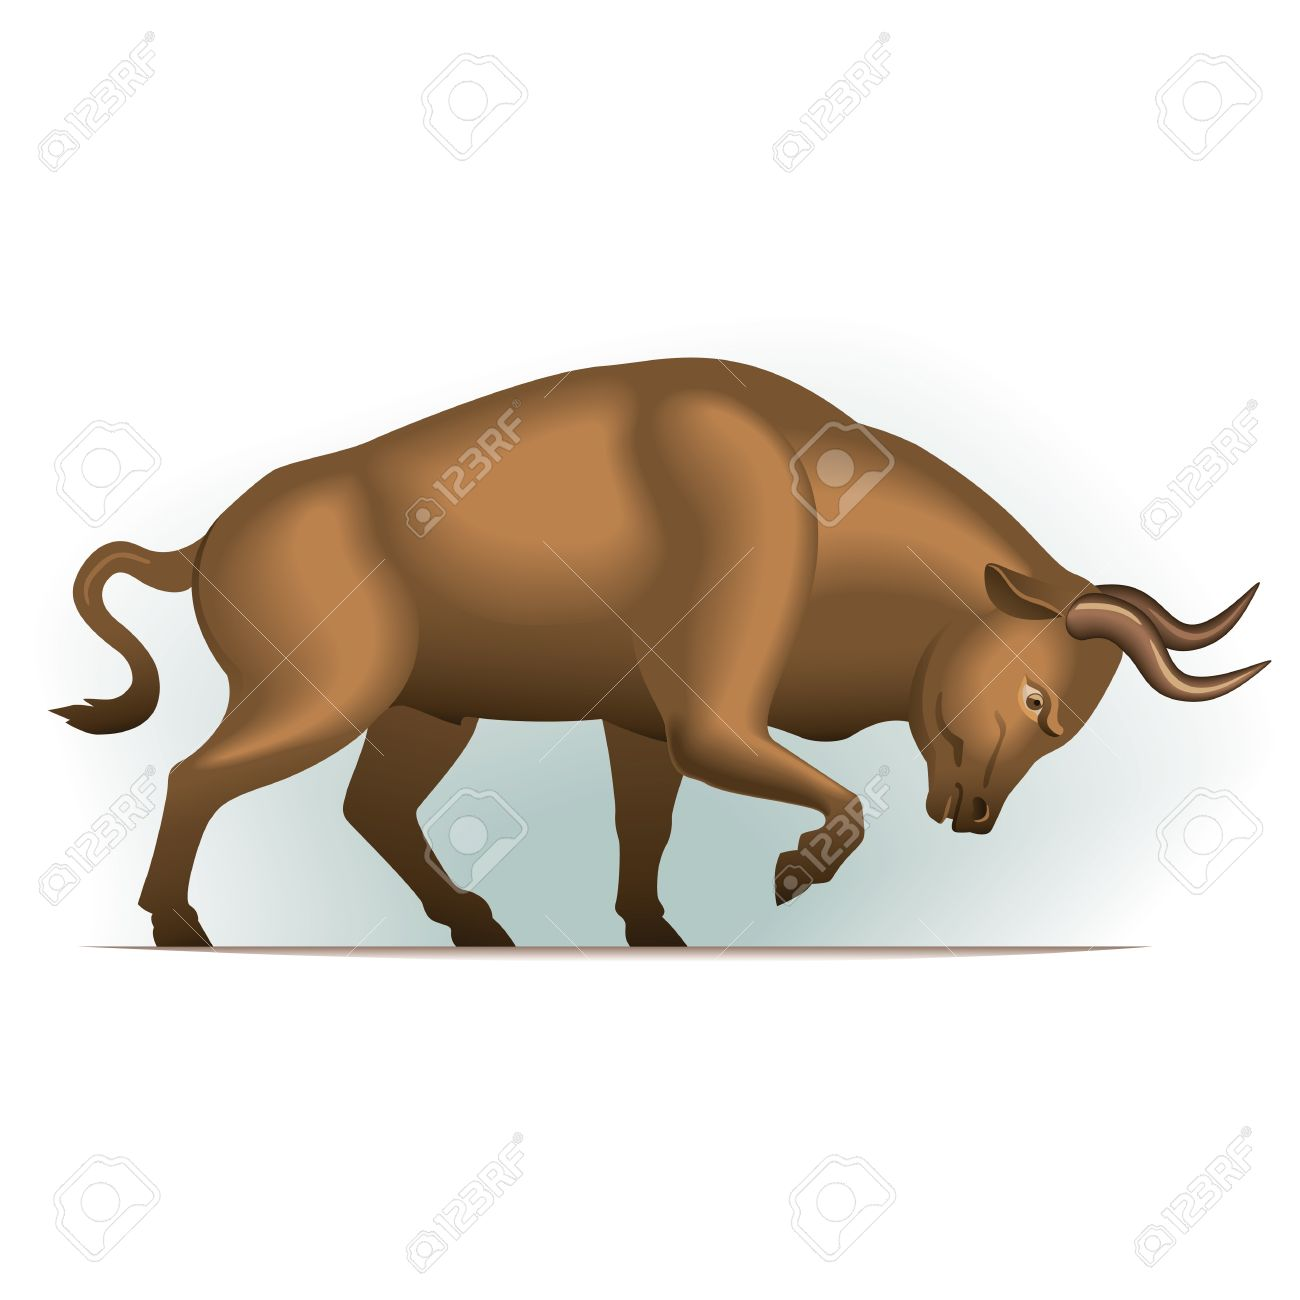 Bull vector illustration in color, financial theme ; isolated on background. Stock Vector - 11974258